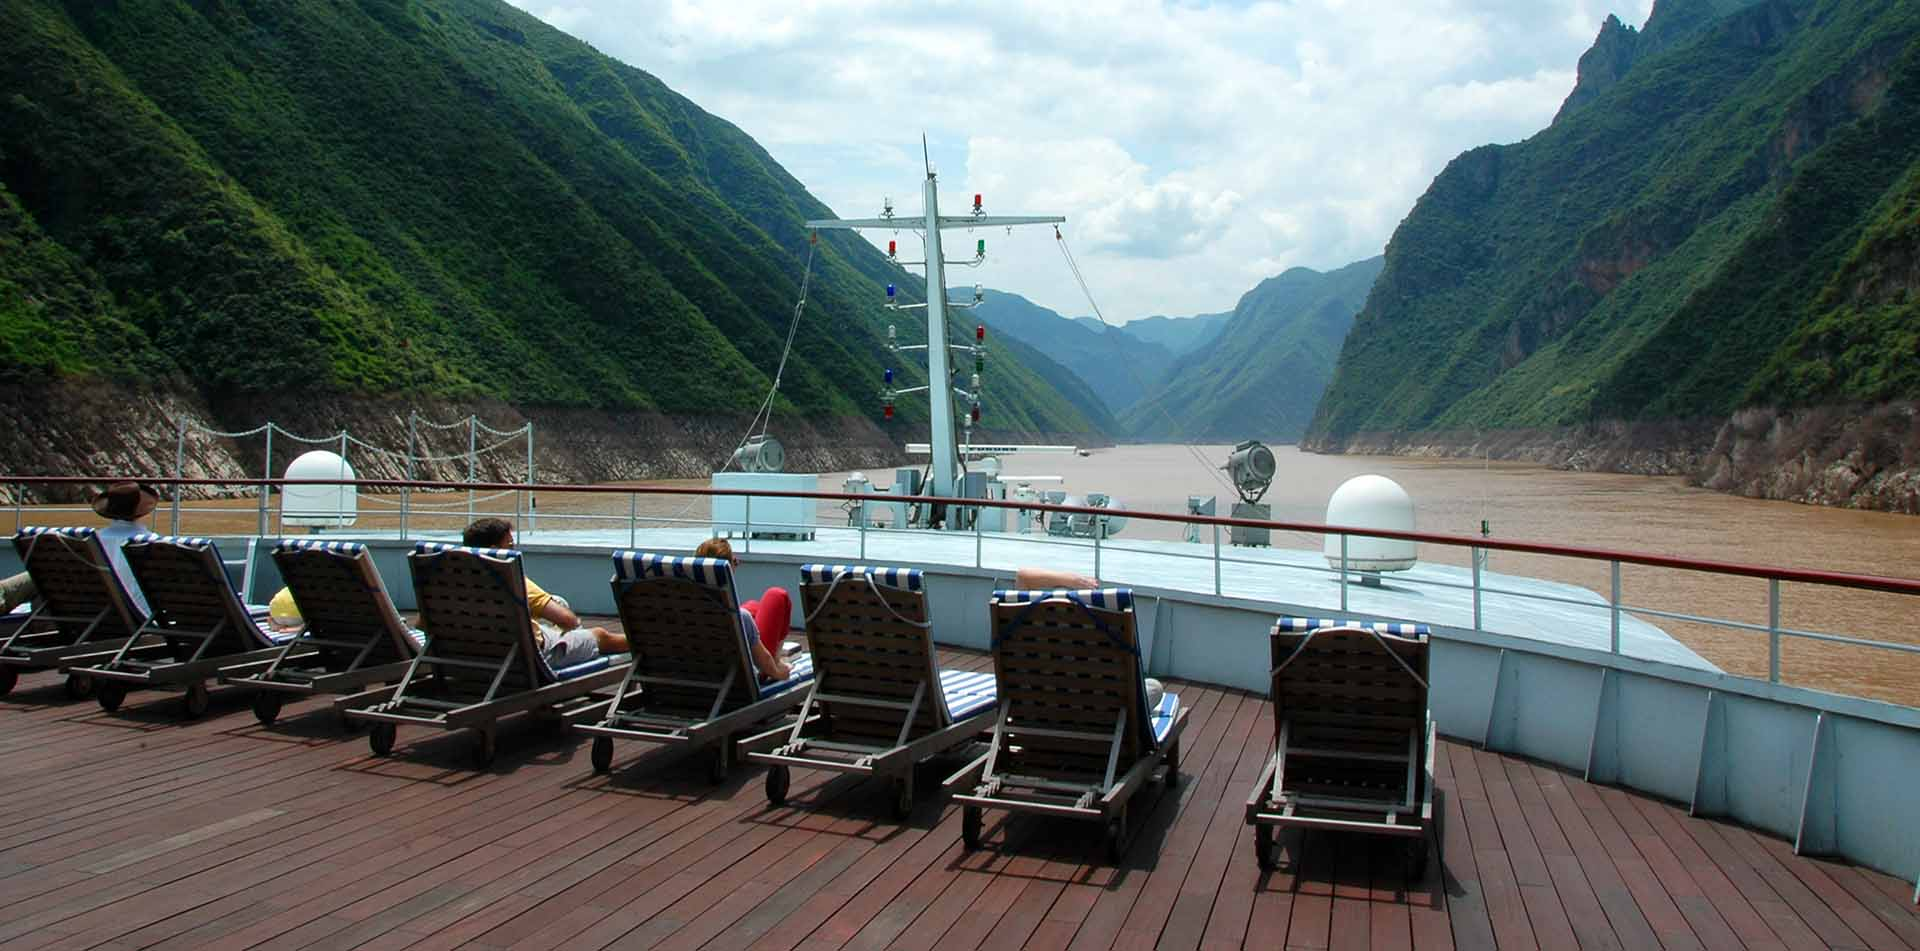 Asia China people lounging in chairs on the bow of a Yangtze River cruise ship - luxury vacation destinations